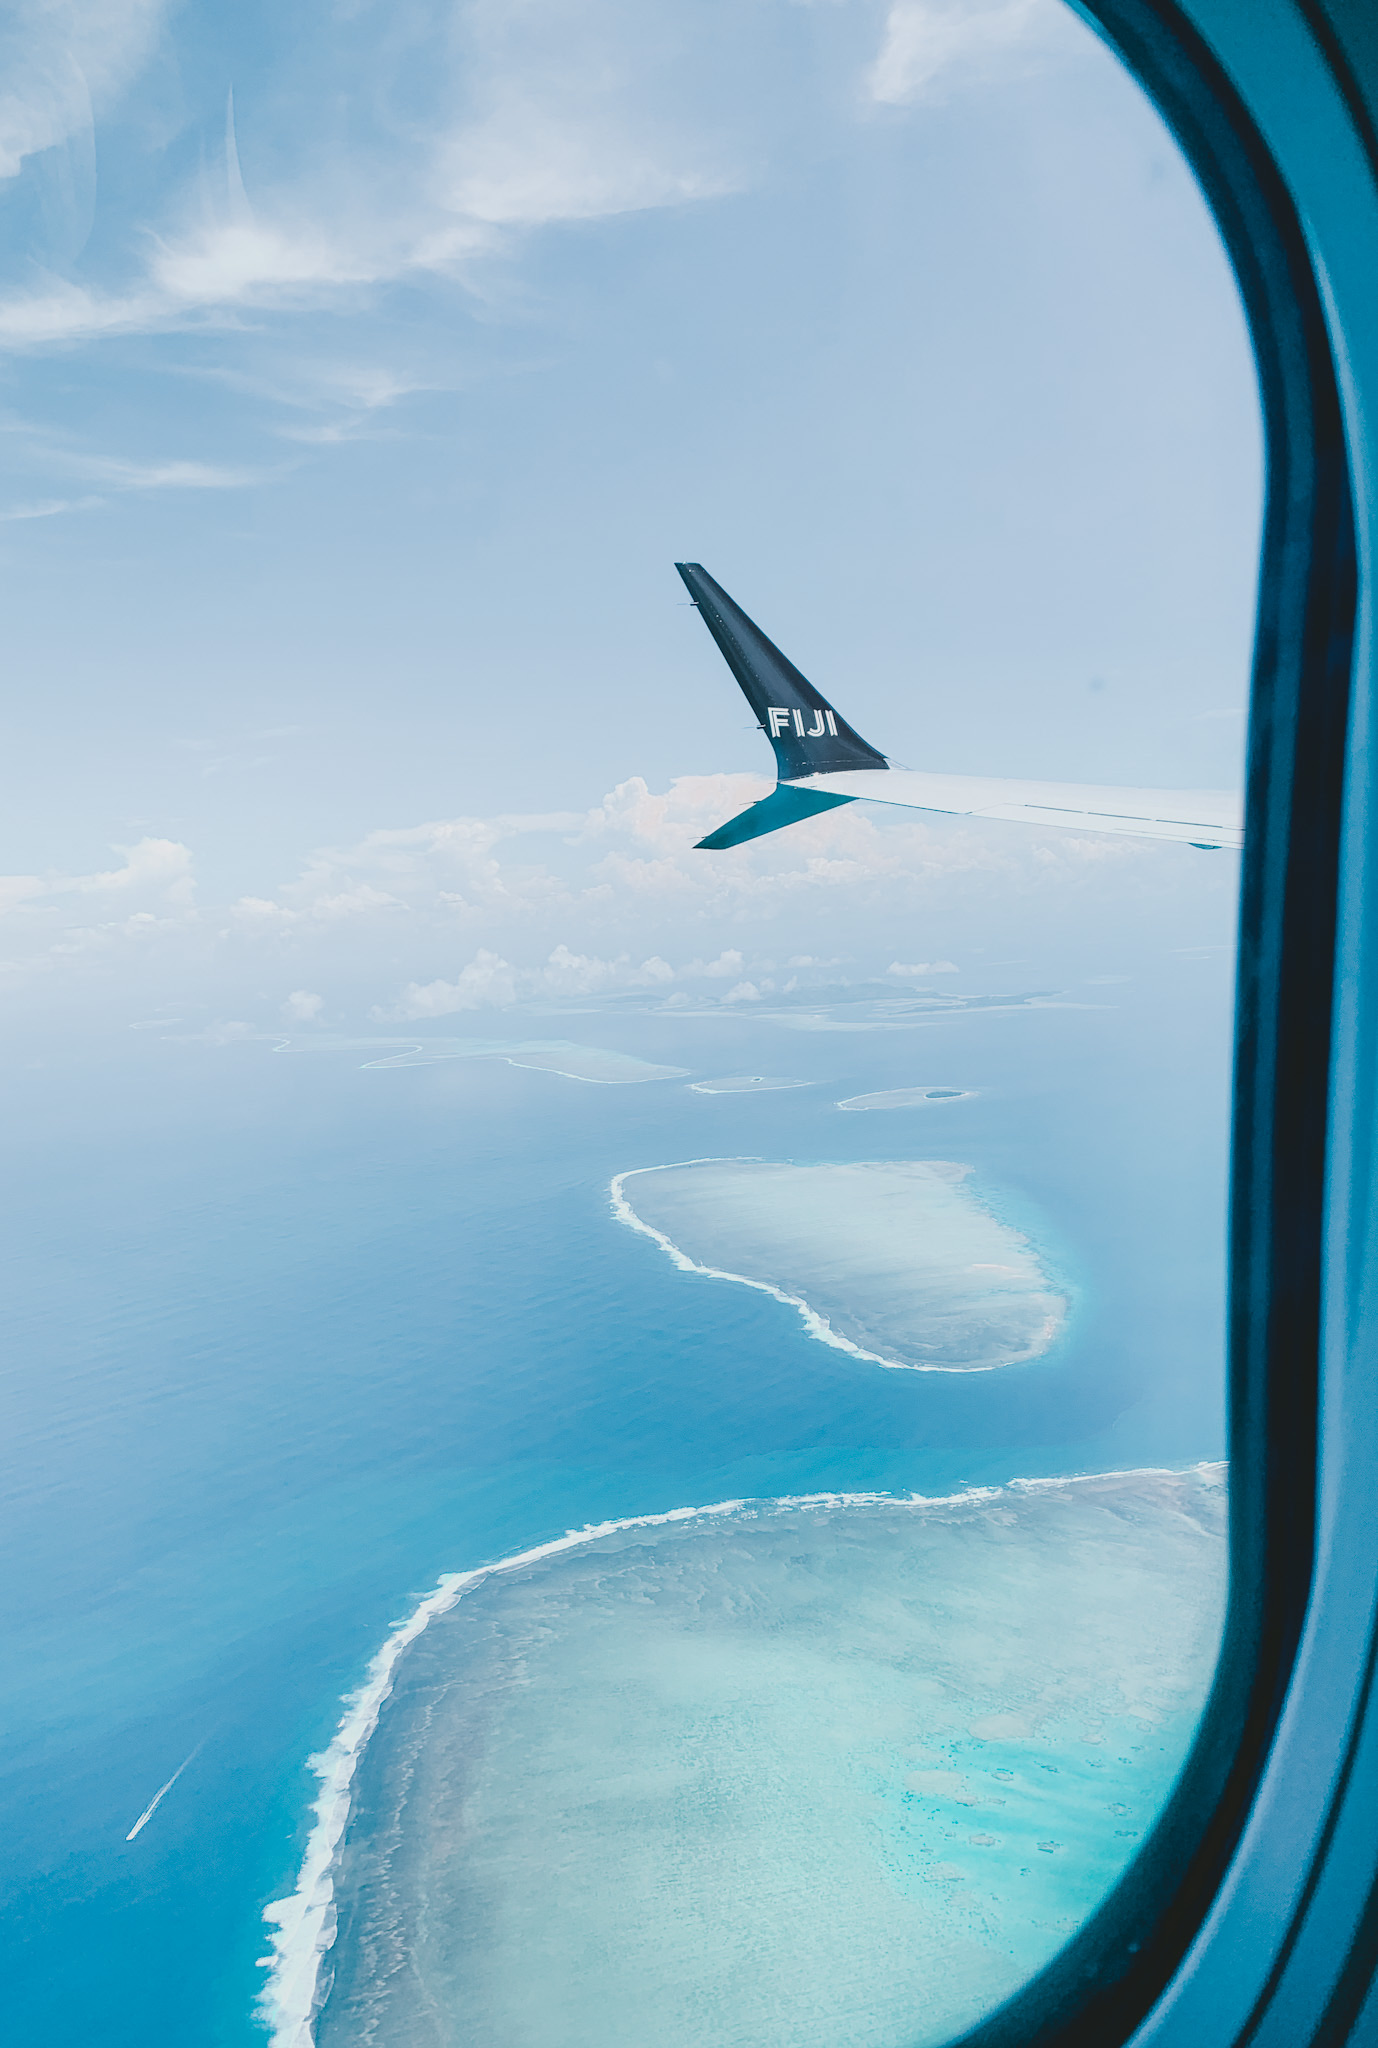 About to land in Fiji!